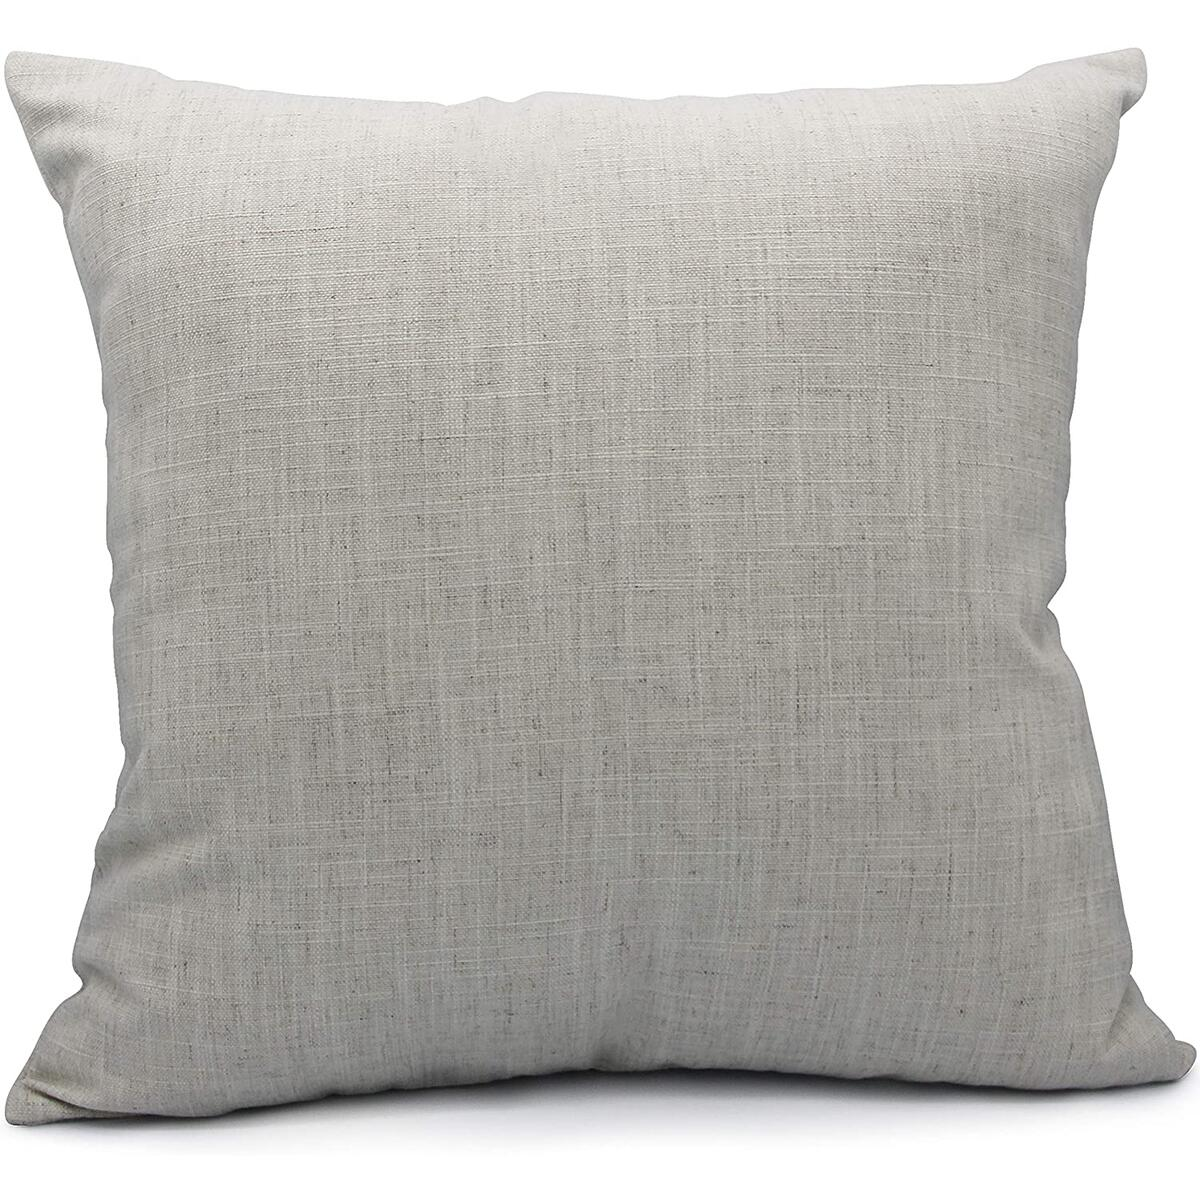 B.Y Elements Burlap Linen Square Throw Pillow Covers for Sofa Couch Chair with Invisible Zipper, Farmhouse and Modern,18x18 Inches,Light Grey…